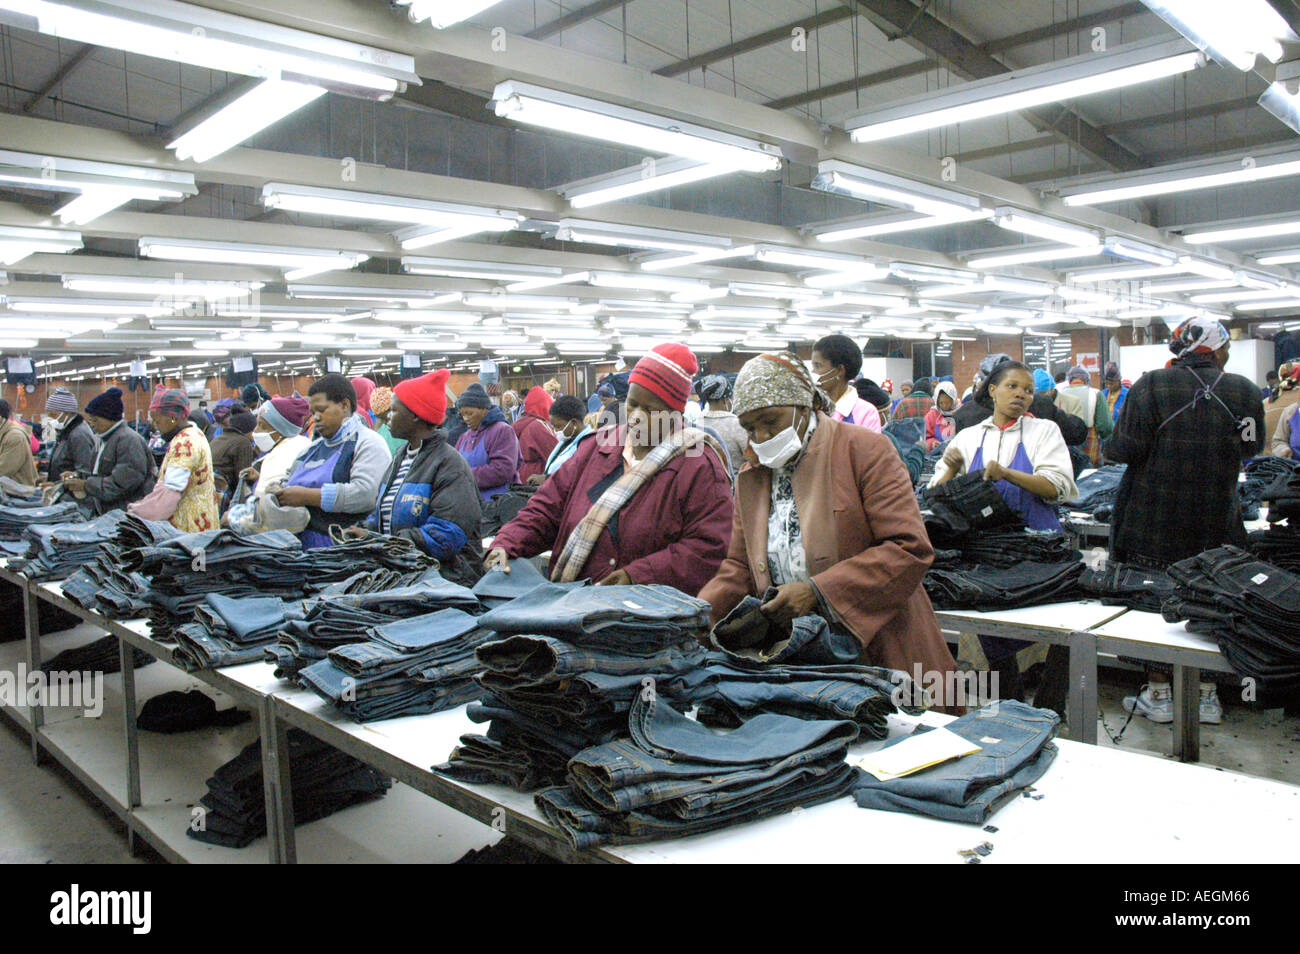 Chinese clothing factory for making blue jeans in Lesotho Africa Stock Photo Royalty Free Image ...